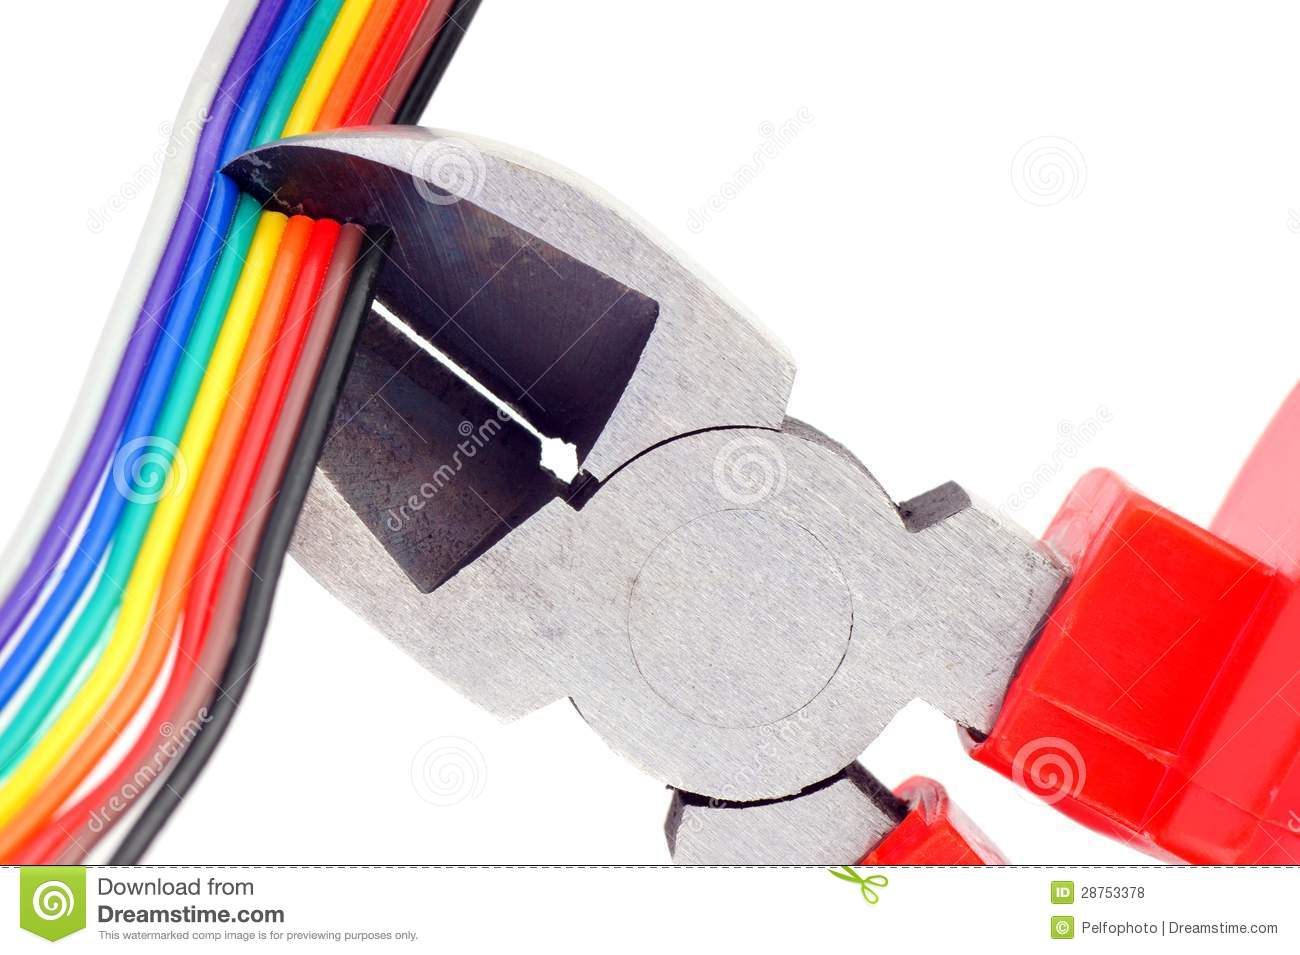 hight resolution of nippers cutting wires